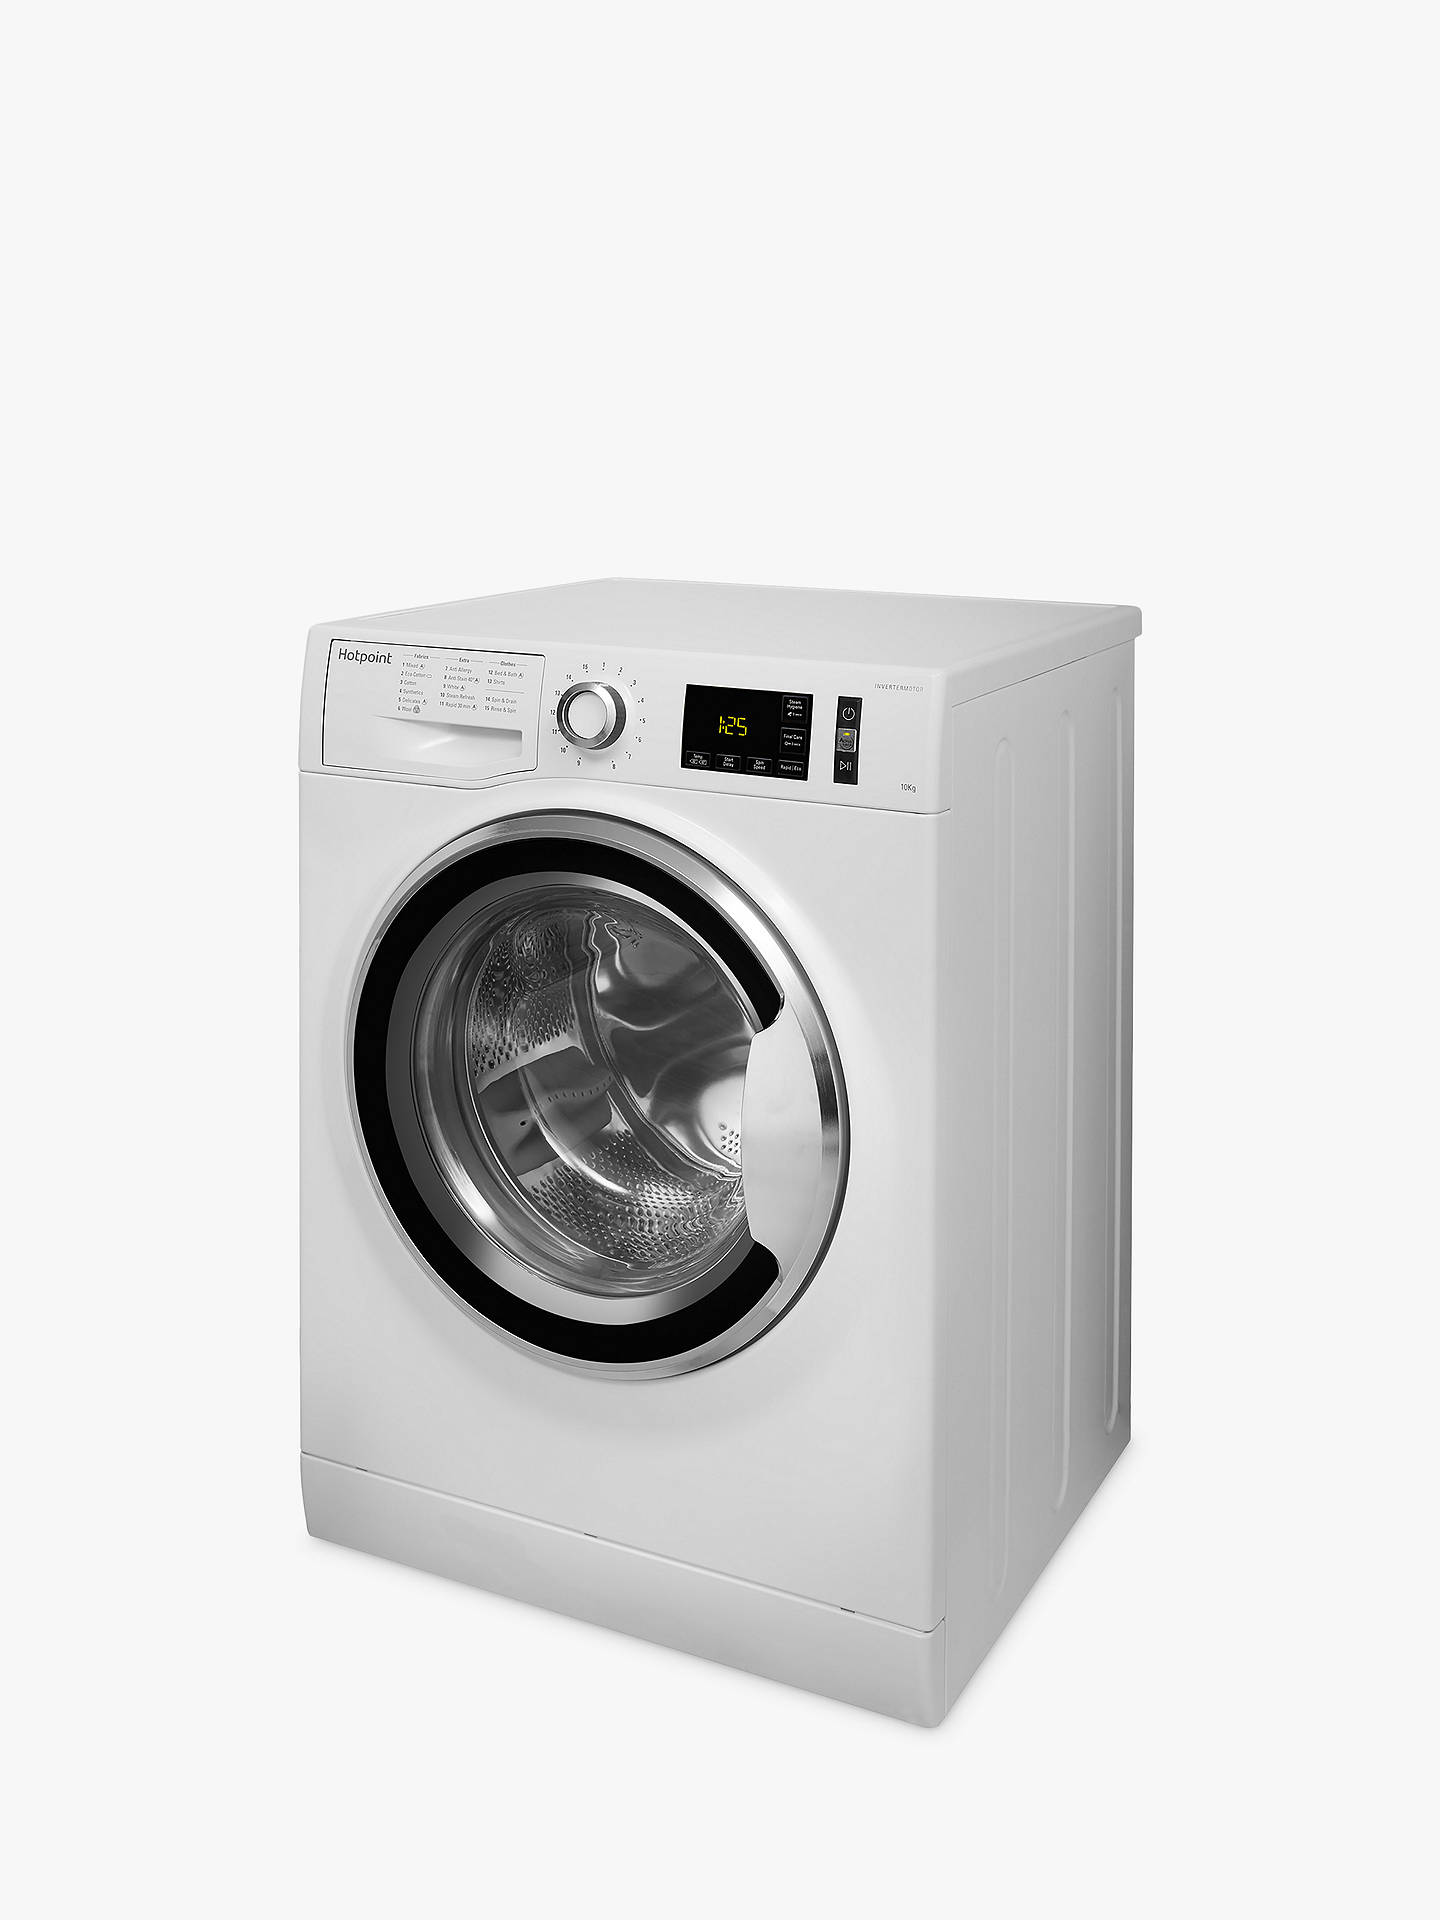 ... Buy Hotpoint NM111045WCAUK Washing Machine, 10kg Load, 1400rpm, A+++ Energy, White Online ...